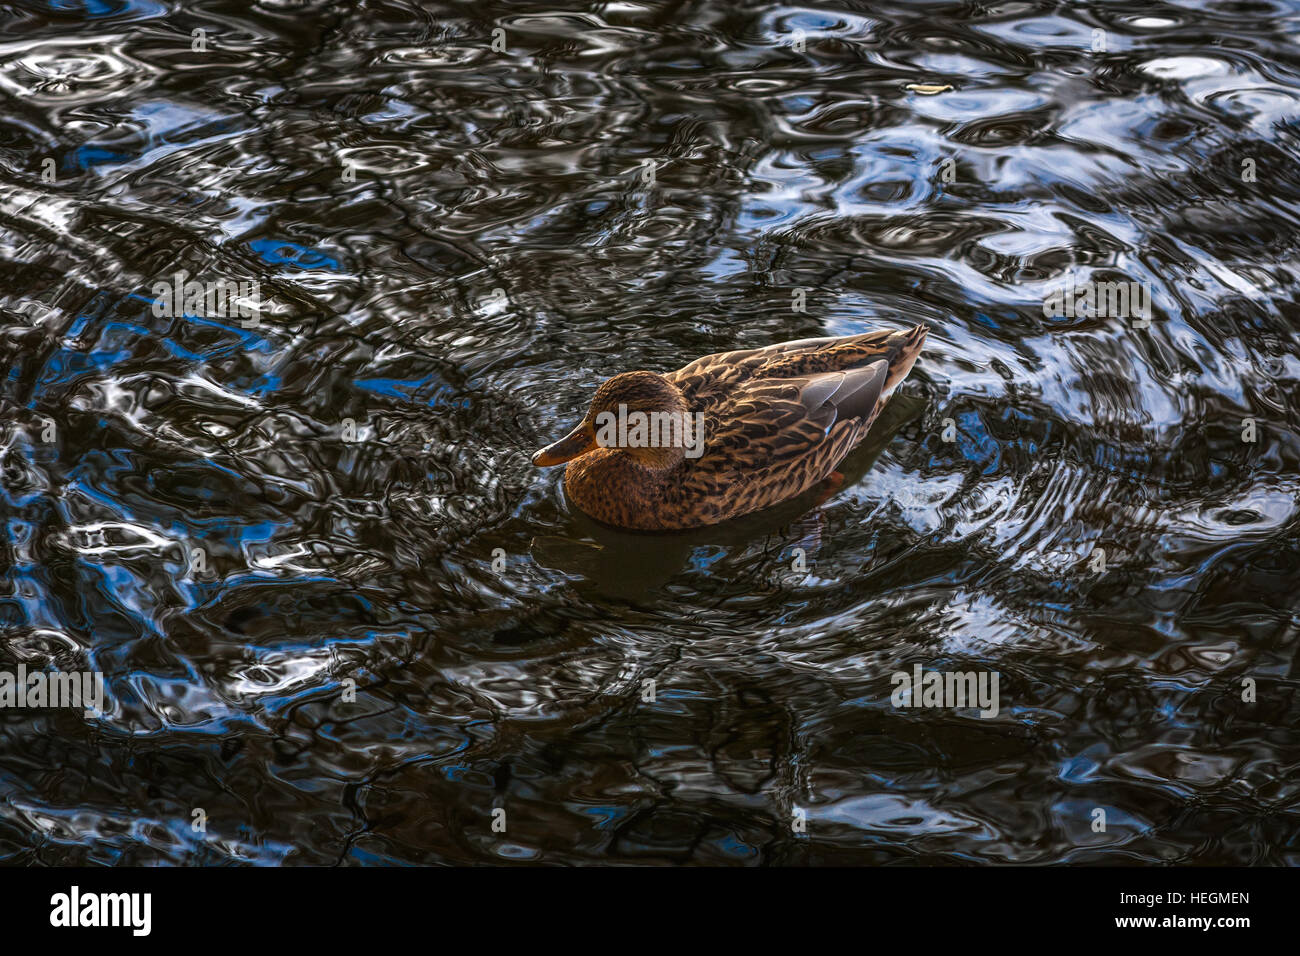 duck ordinary in a wave pattern - Stock Image